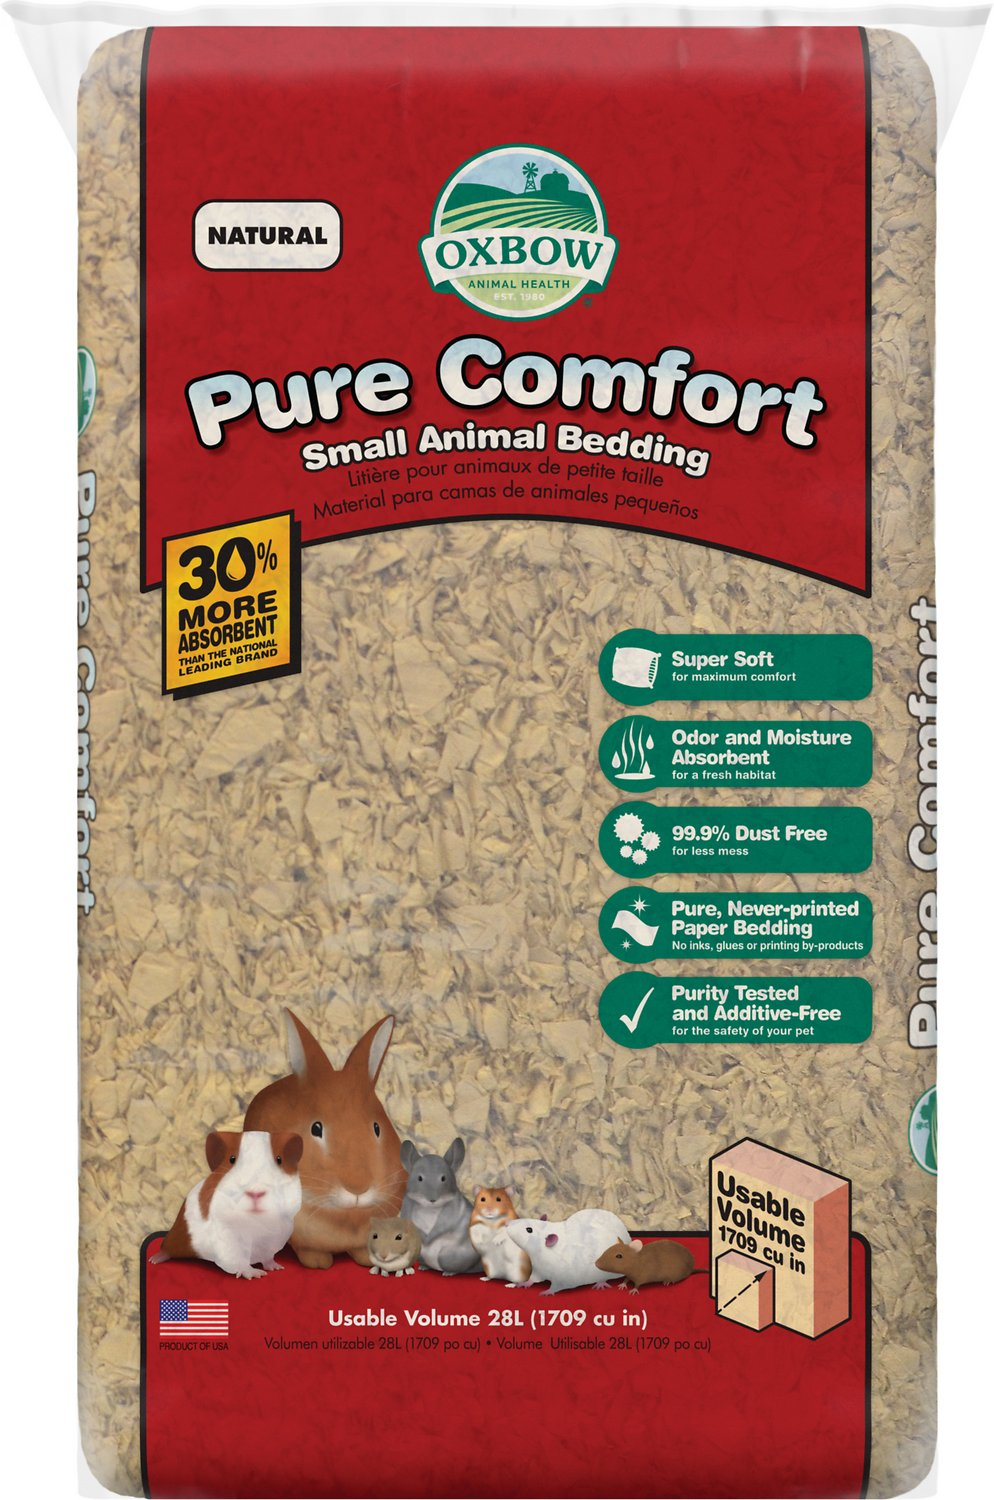 Oxbow Pure Comfort Small Animal Bedding, Natural, 28-L